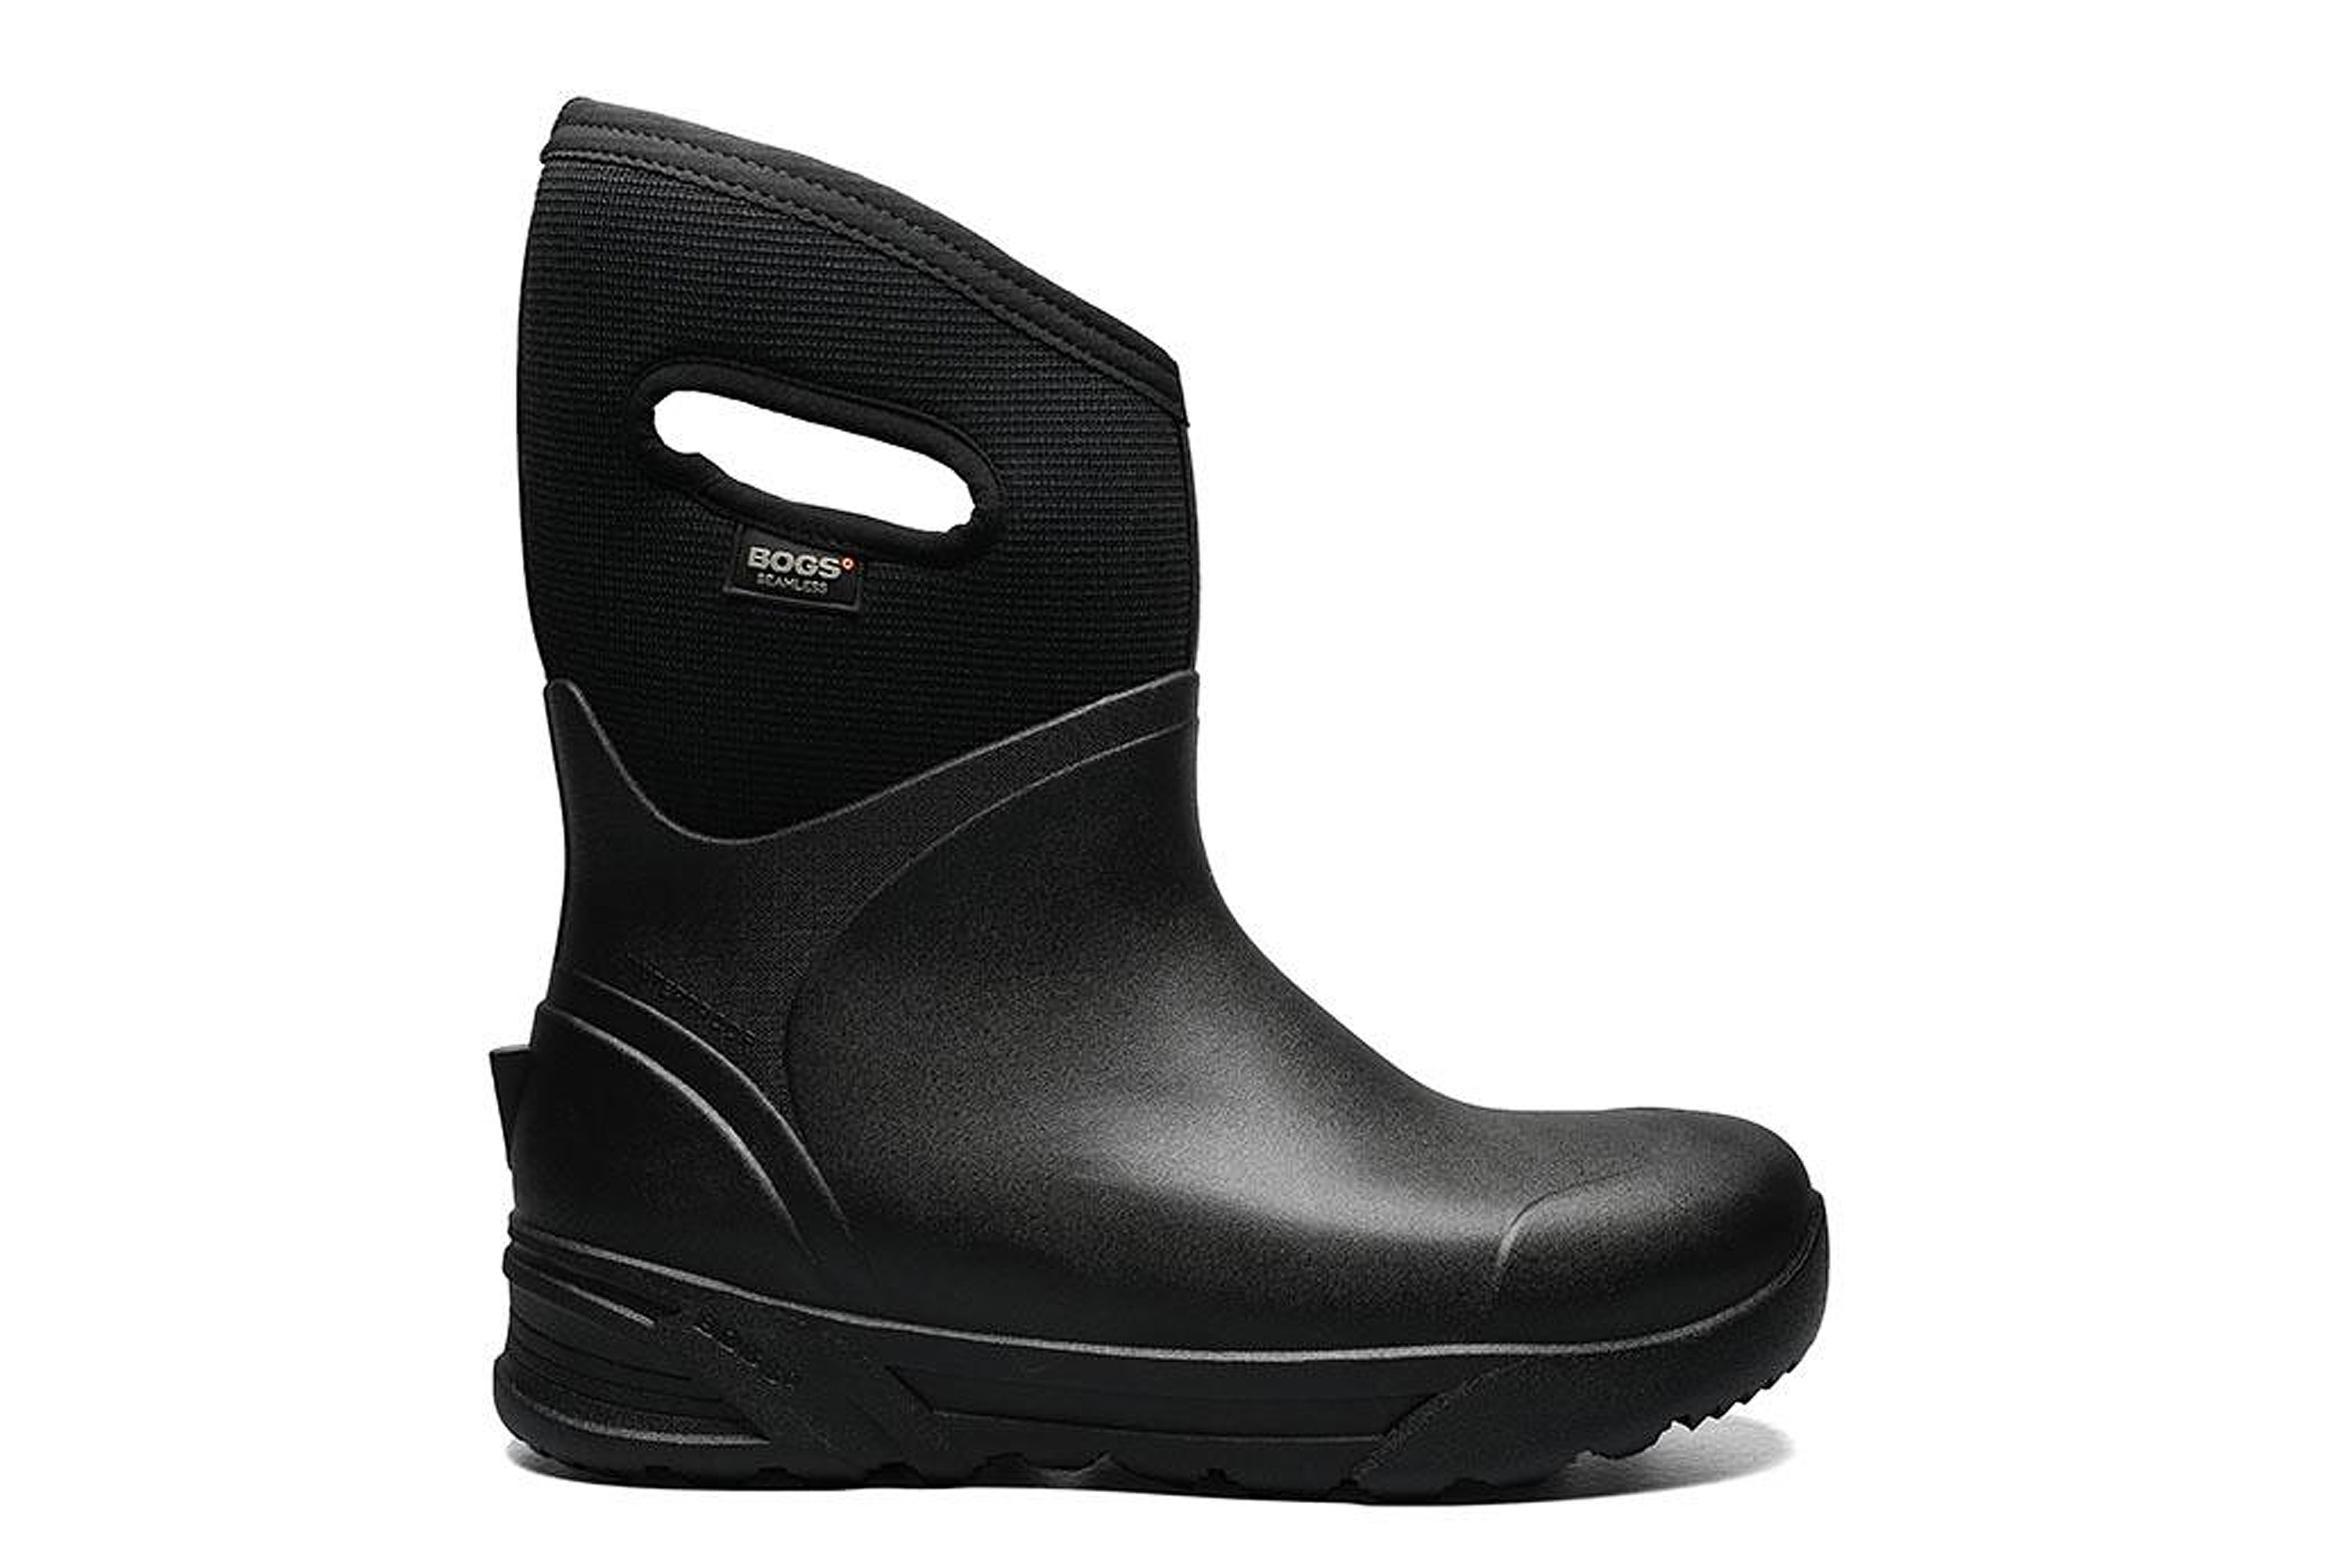 Best_Winter_Boot_Men_Snow_Bogs_Bozeman_Mid